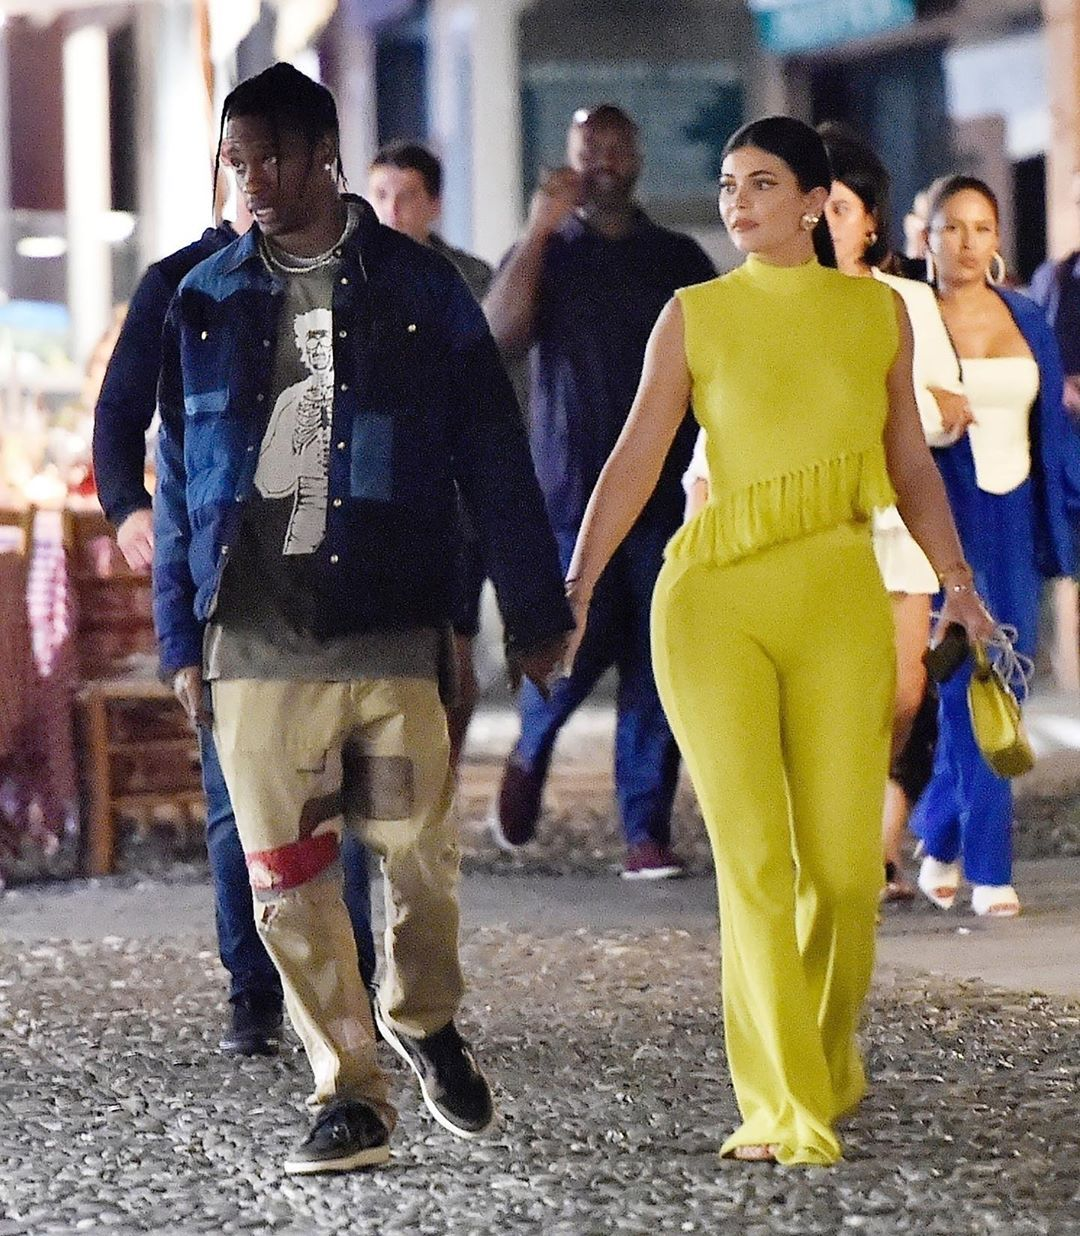 kyliejenner and travisscott hold hands while enjoying a